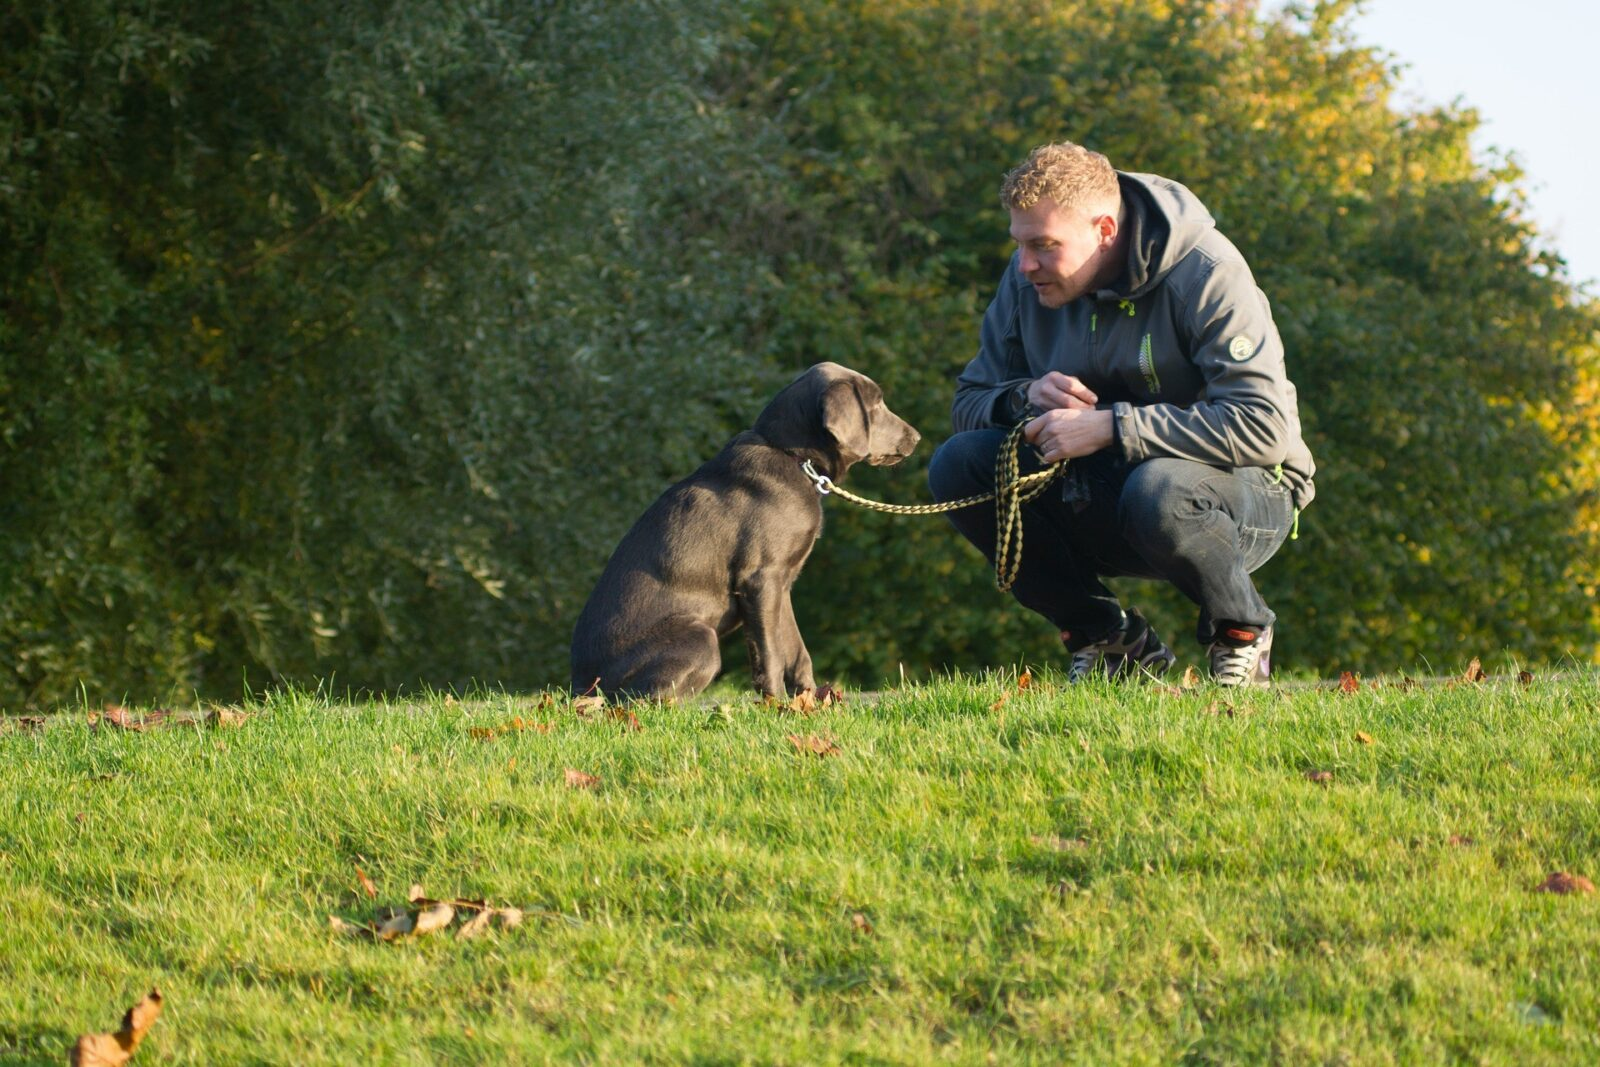 How to be a conscientious dog owner